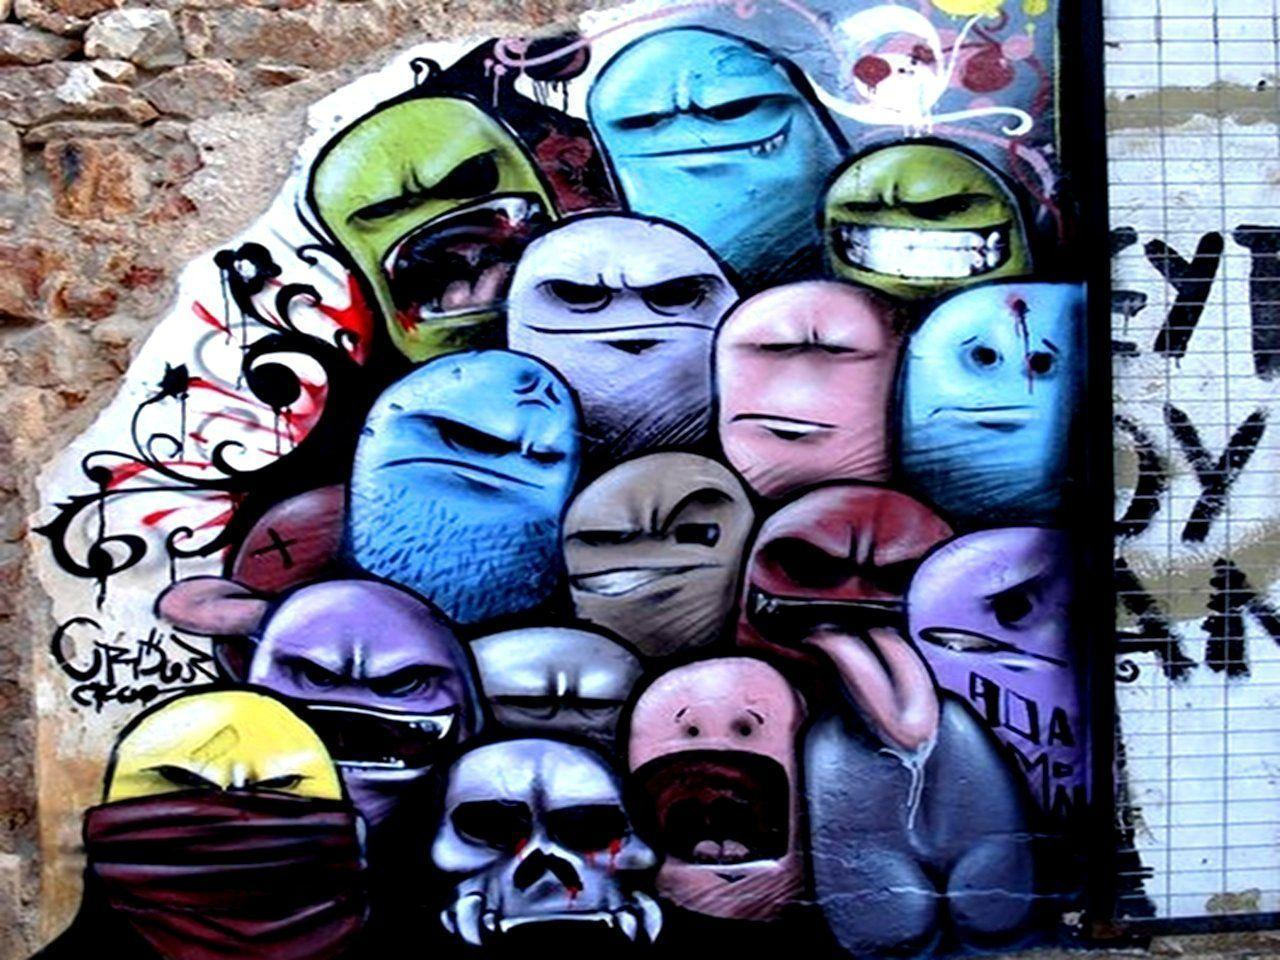 street art cool graffiti wallpapers - photo #26